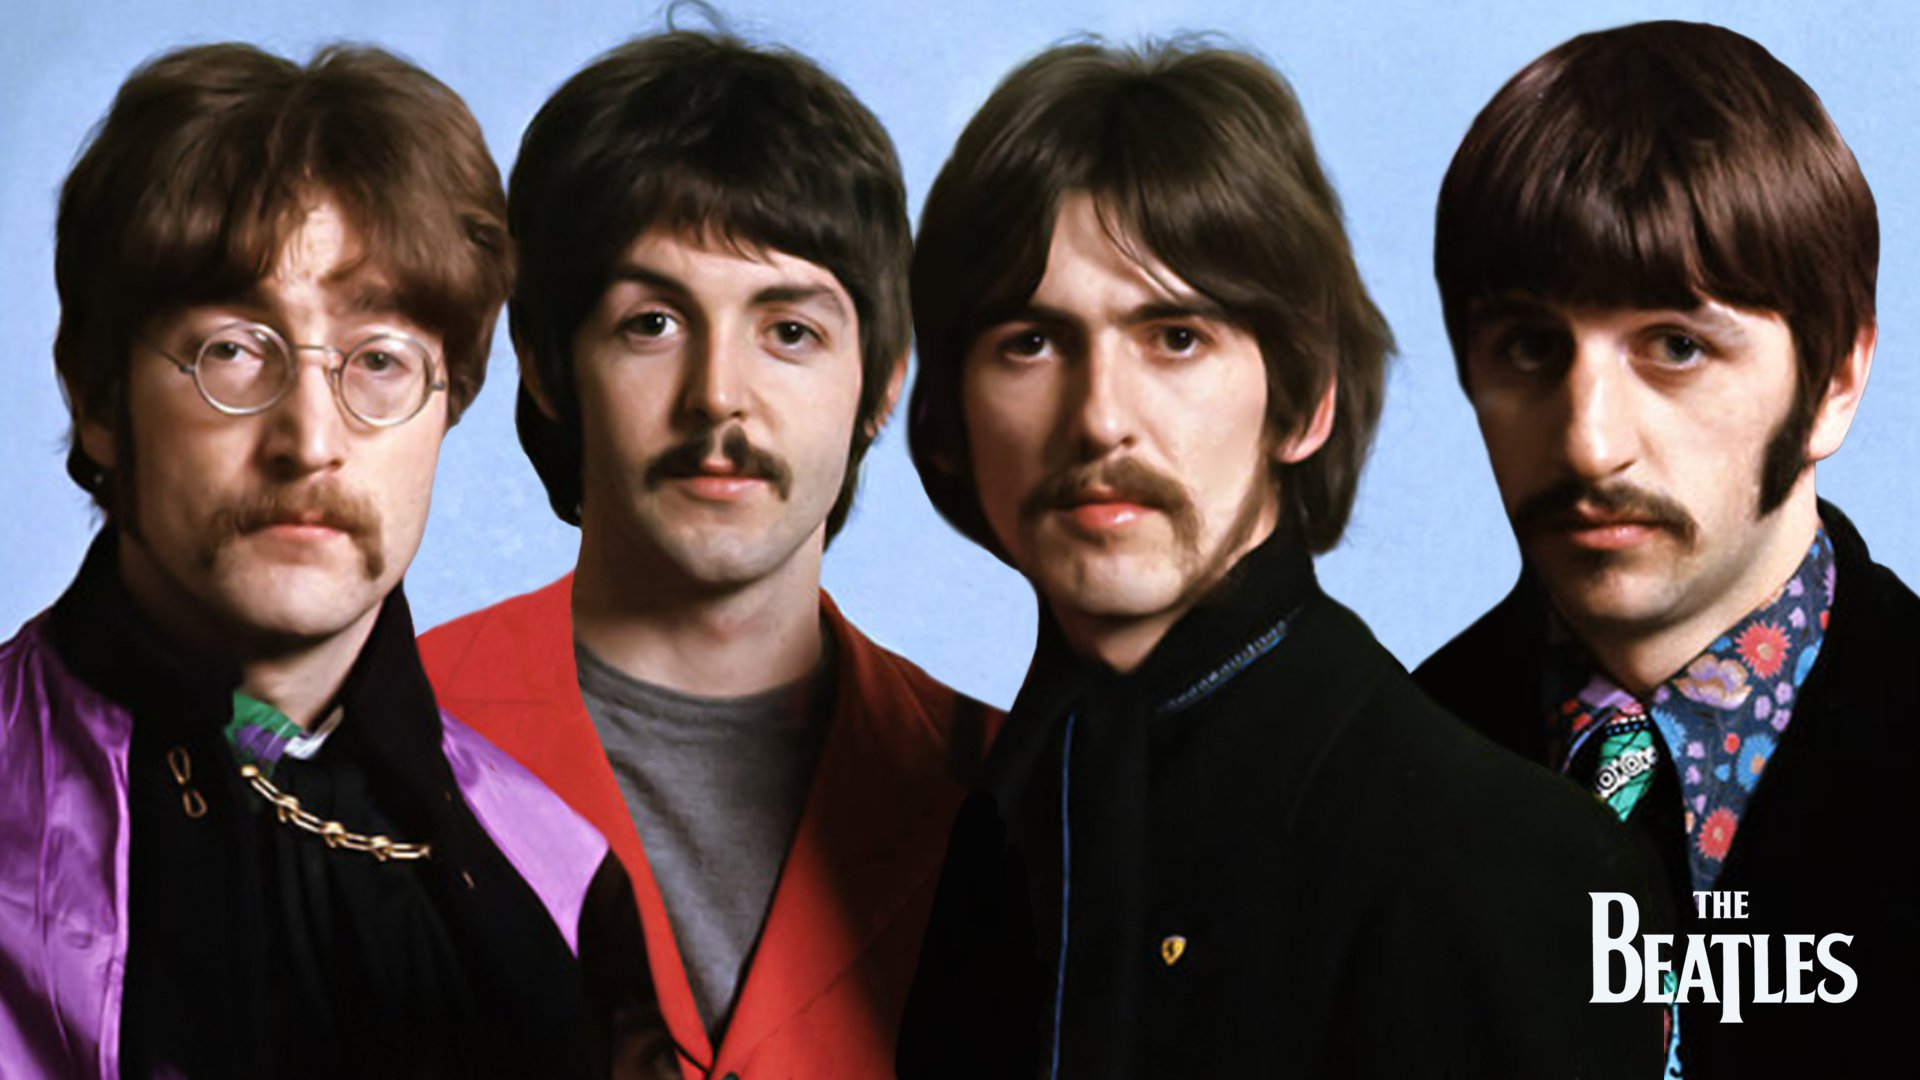 HQ The Beatles Wallpapers | File 194.11Kb